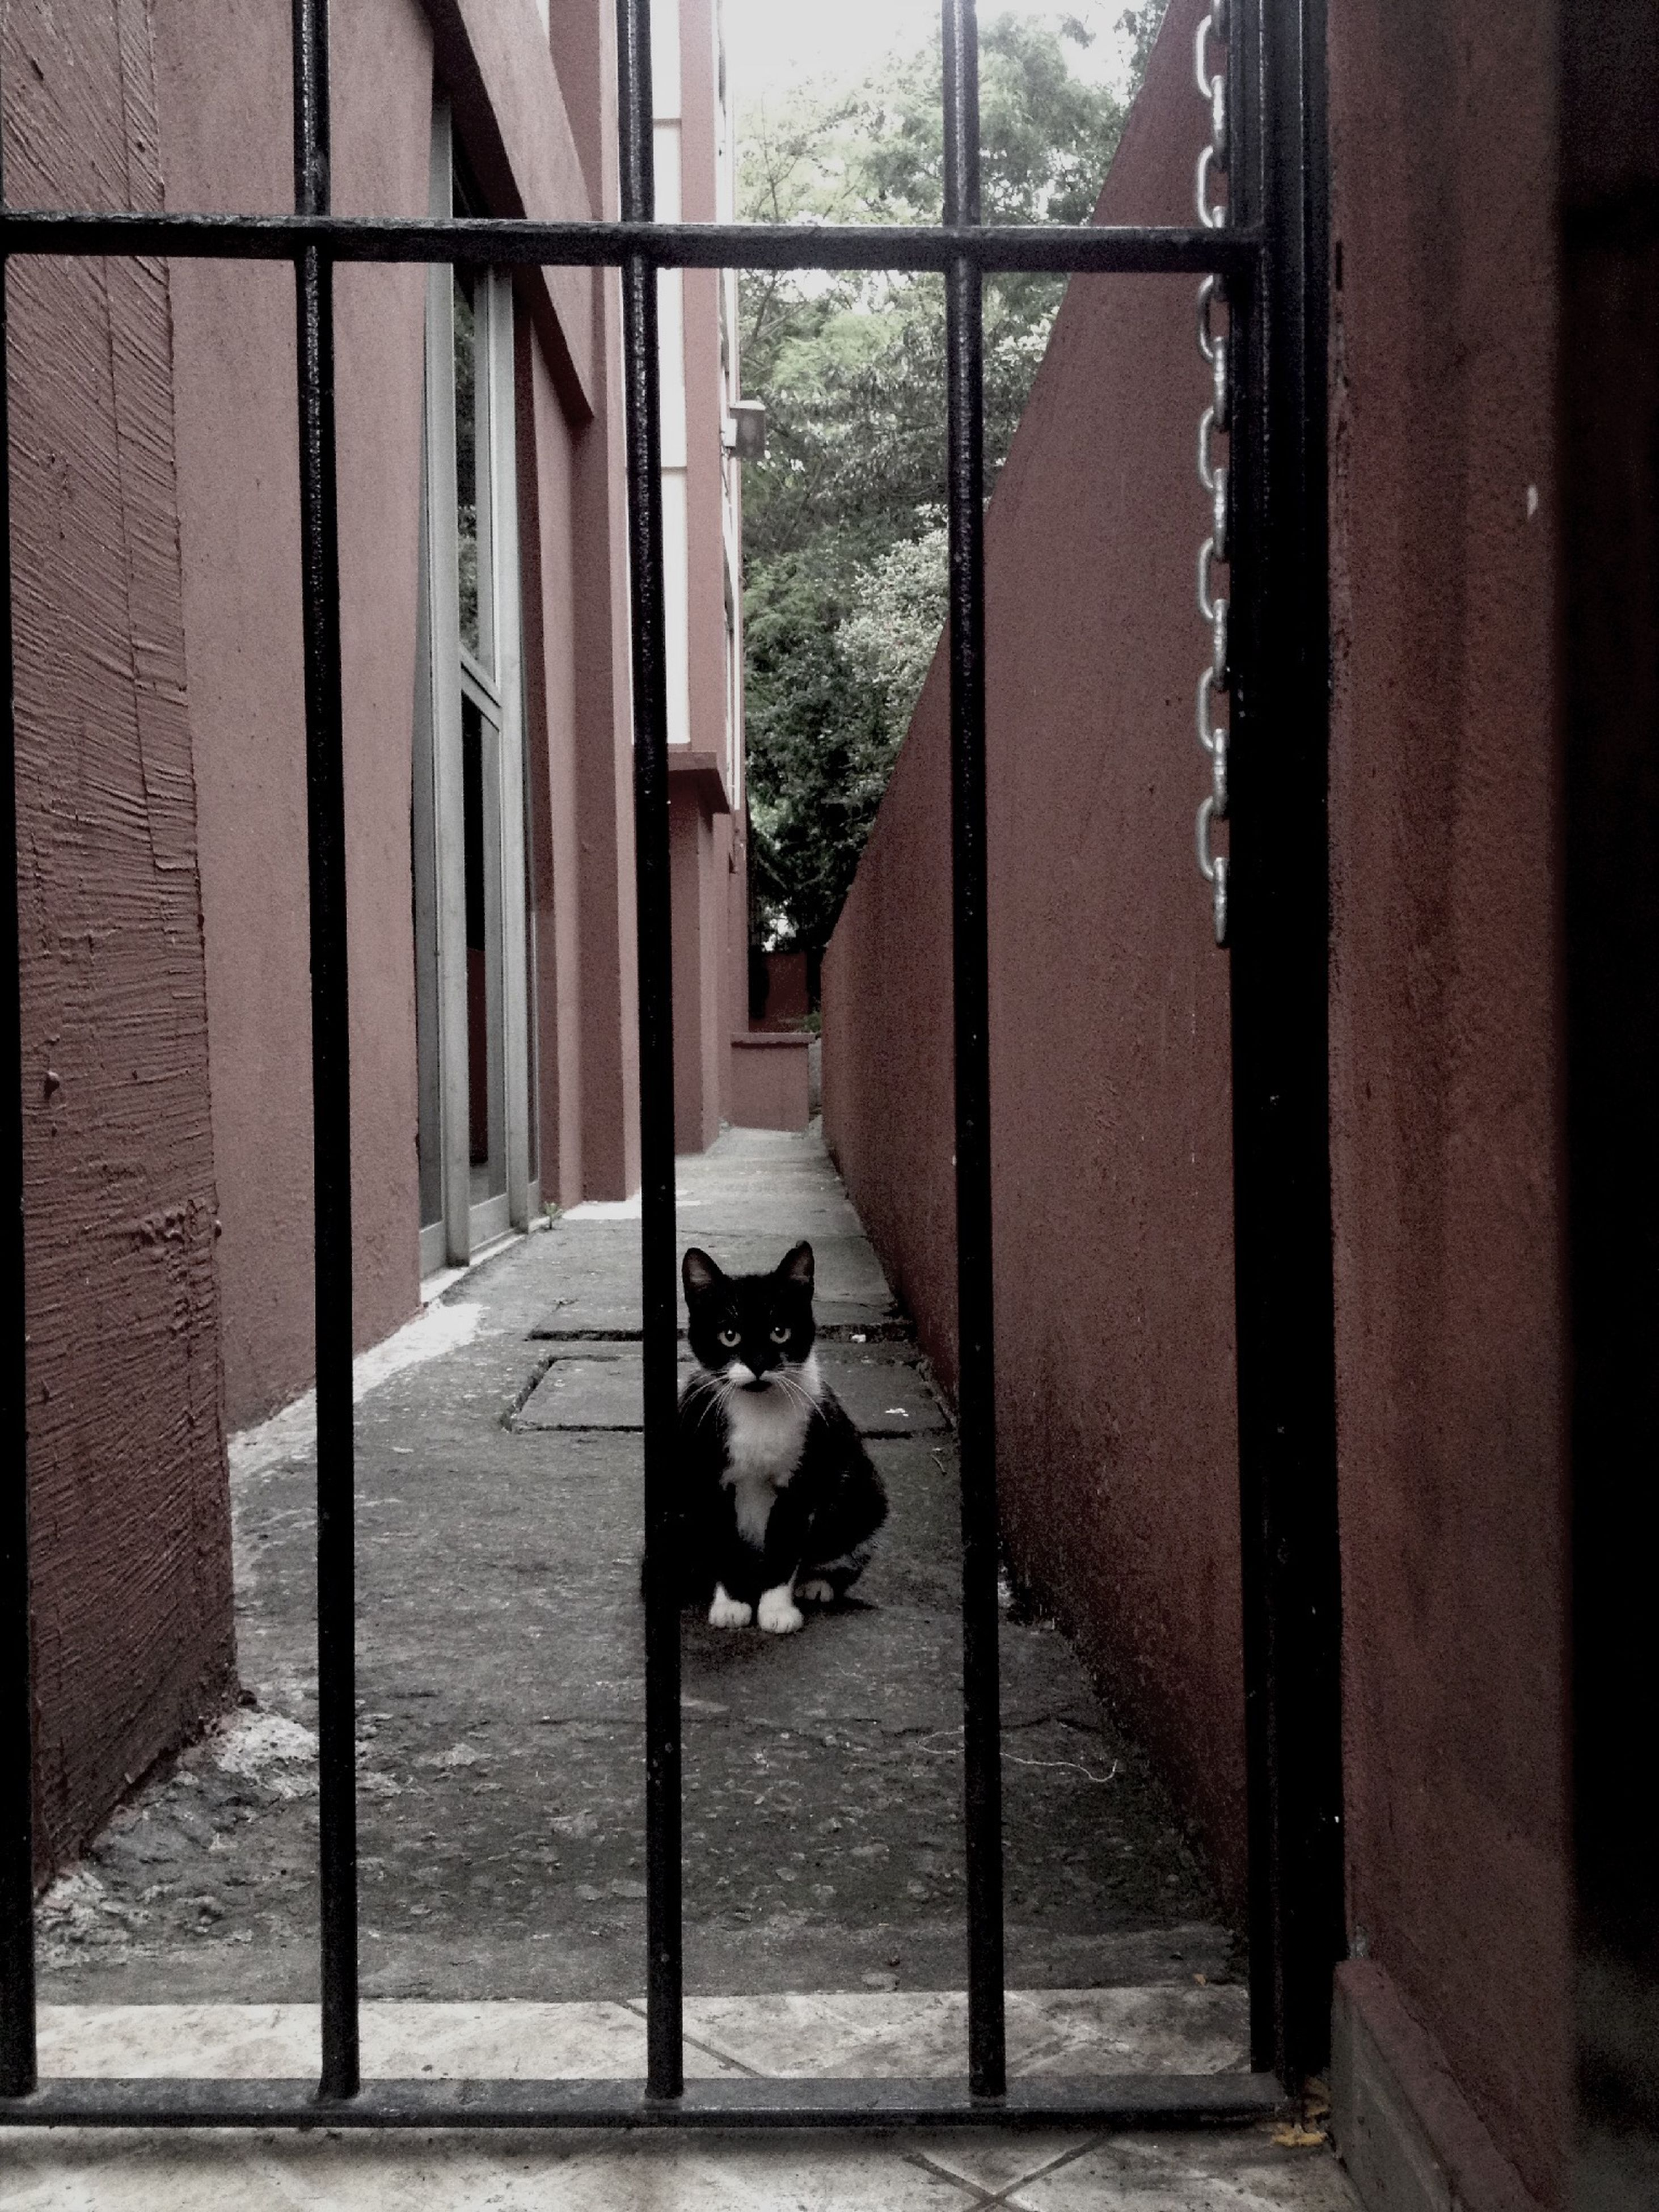 domestic animals, pets, mammal, one animal, architecture, animal themes, built structure, building exterior, domestic cat, dog, cat, house, window, residential structure, feline, wall - building feature, residential building, street, building, door